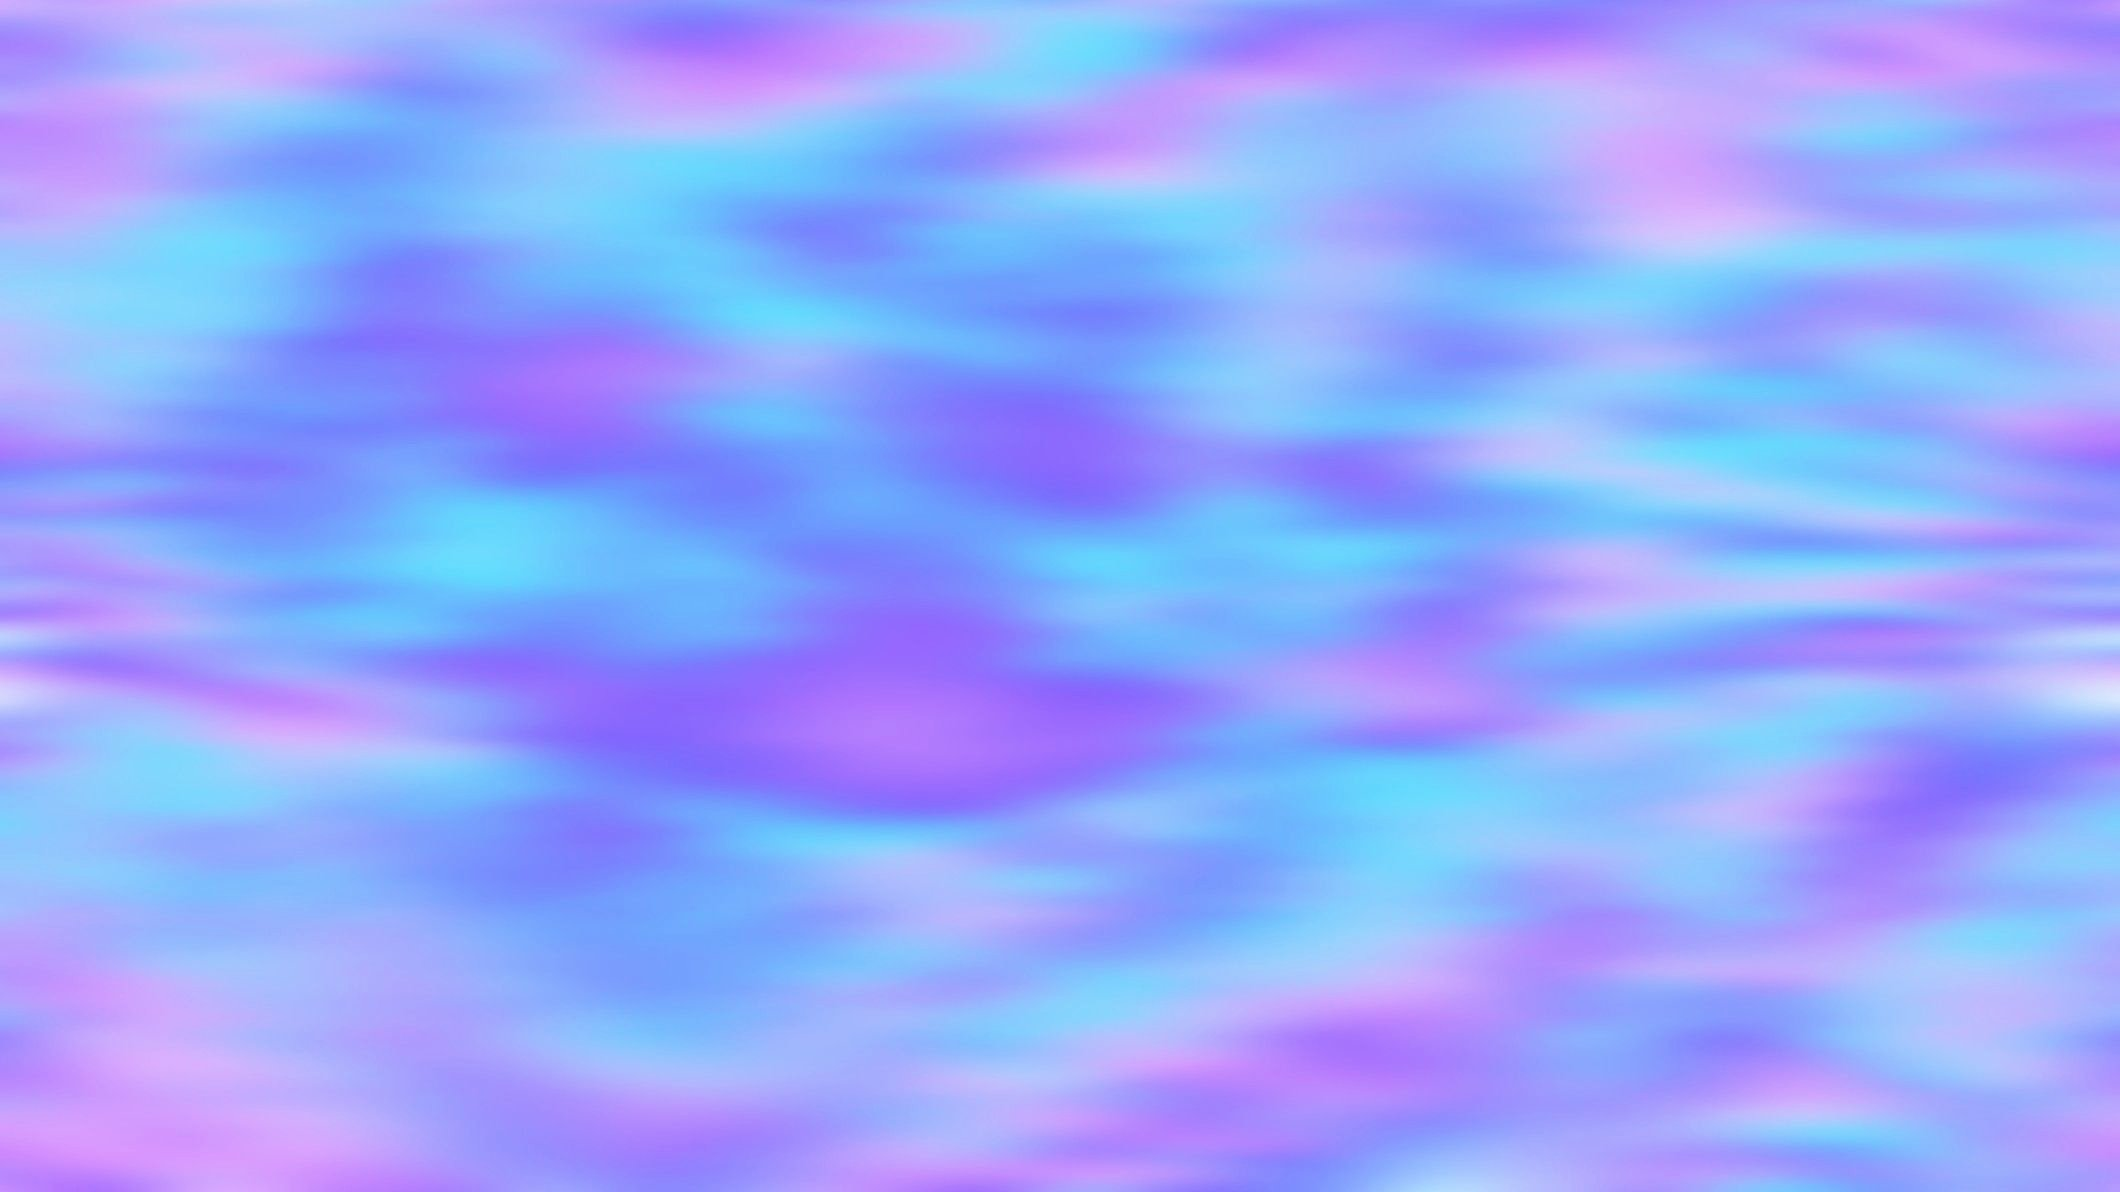 Youtube Channel Art Backgrounds Awesome Collection Girly Youtube Channel Art